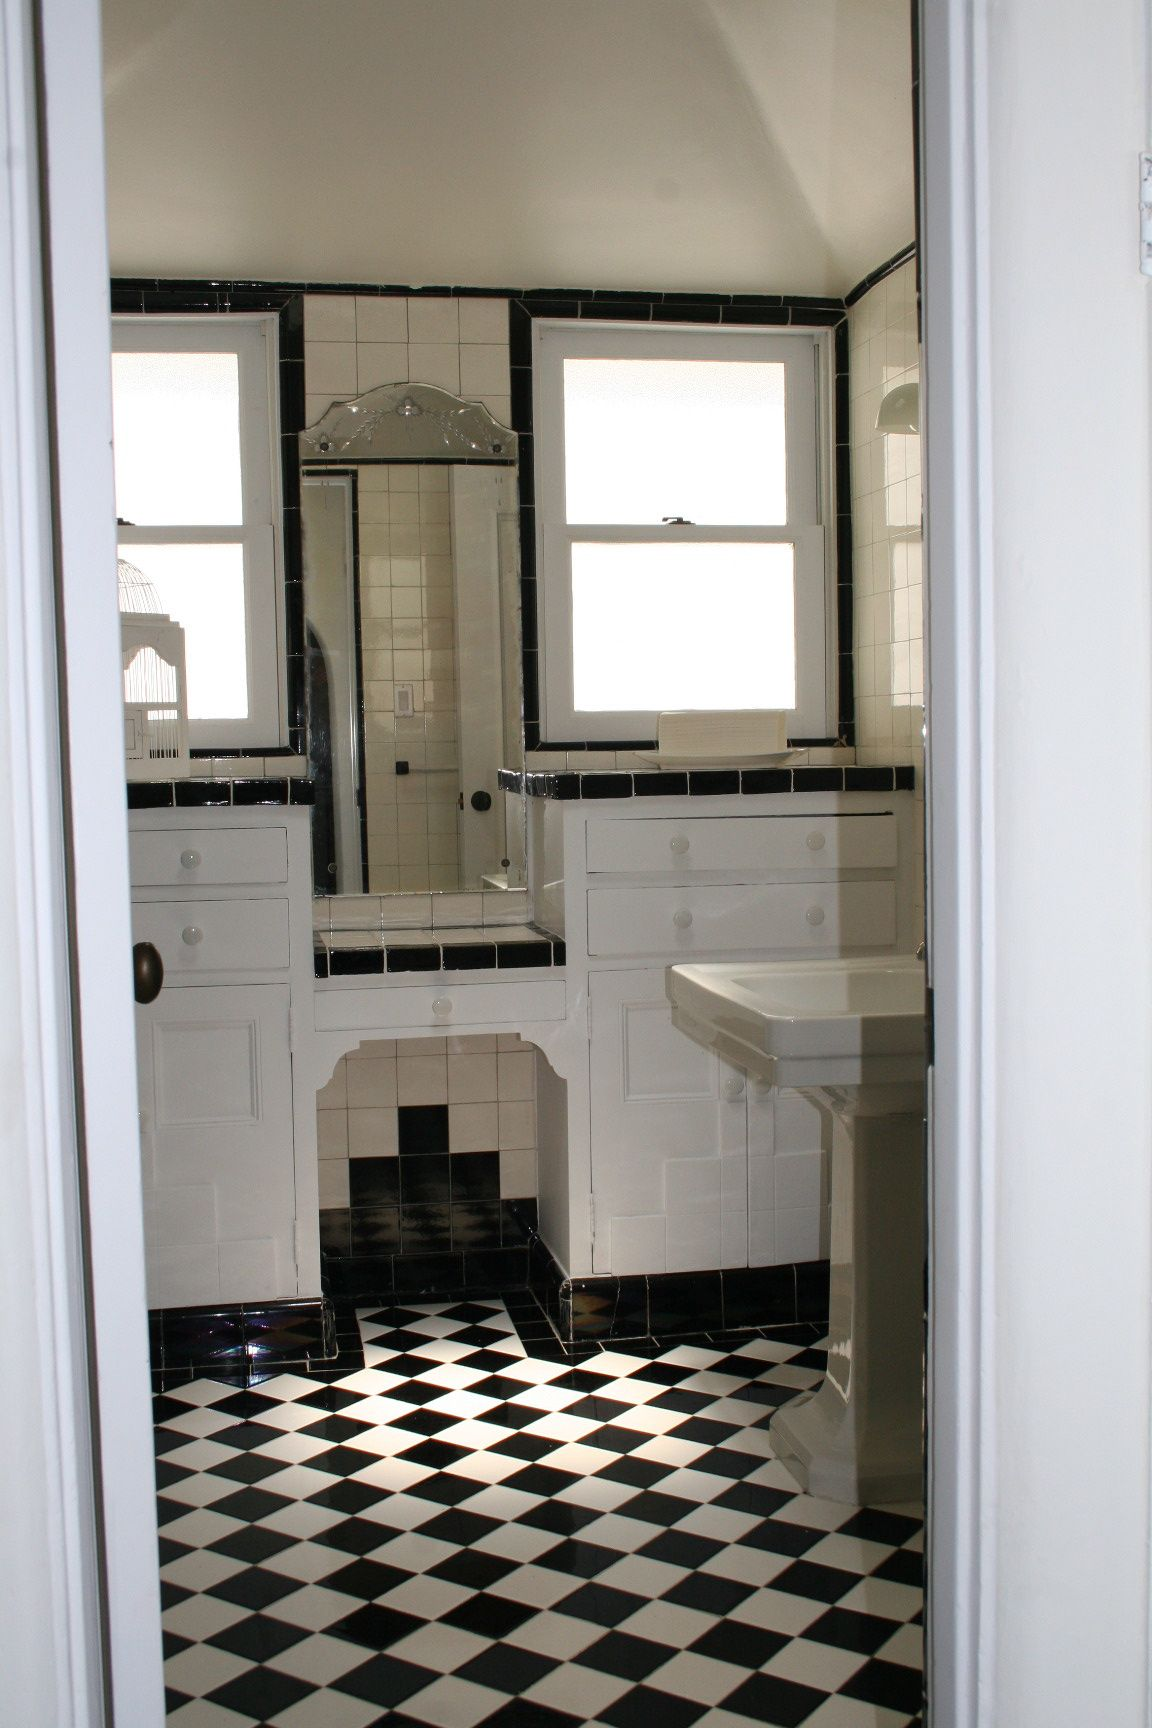 Restored Tile Bathroom In A 1920u0027s Spanish Home In The Hollywood Hills.